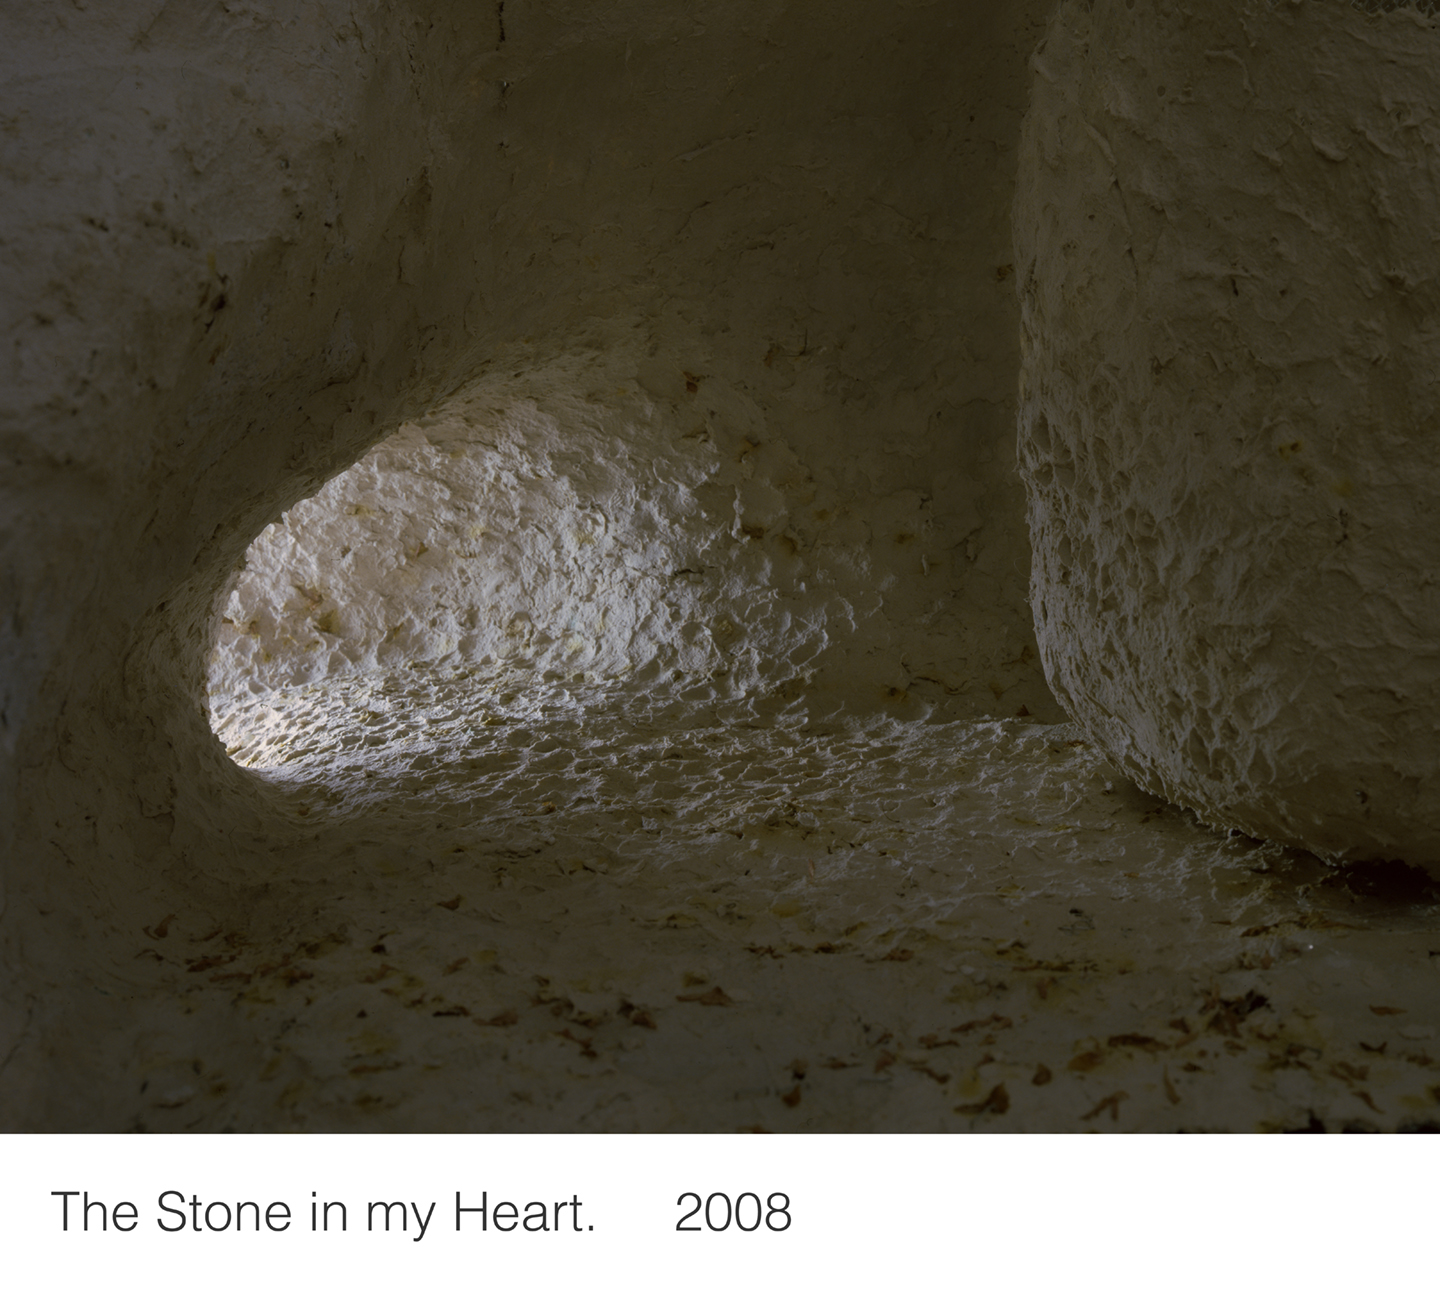 The Stone in my Heart   2008   16X20